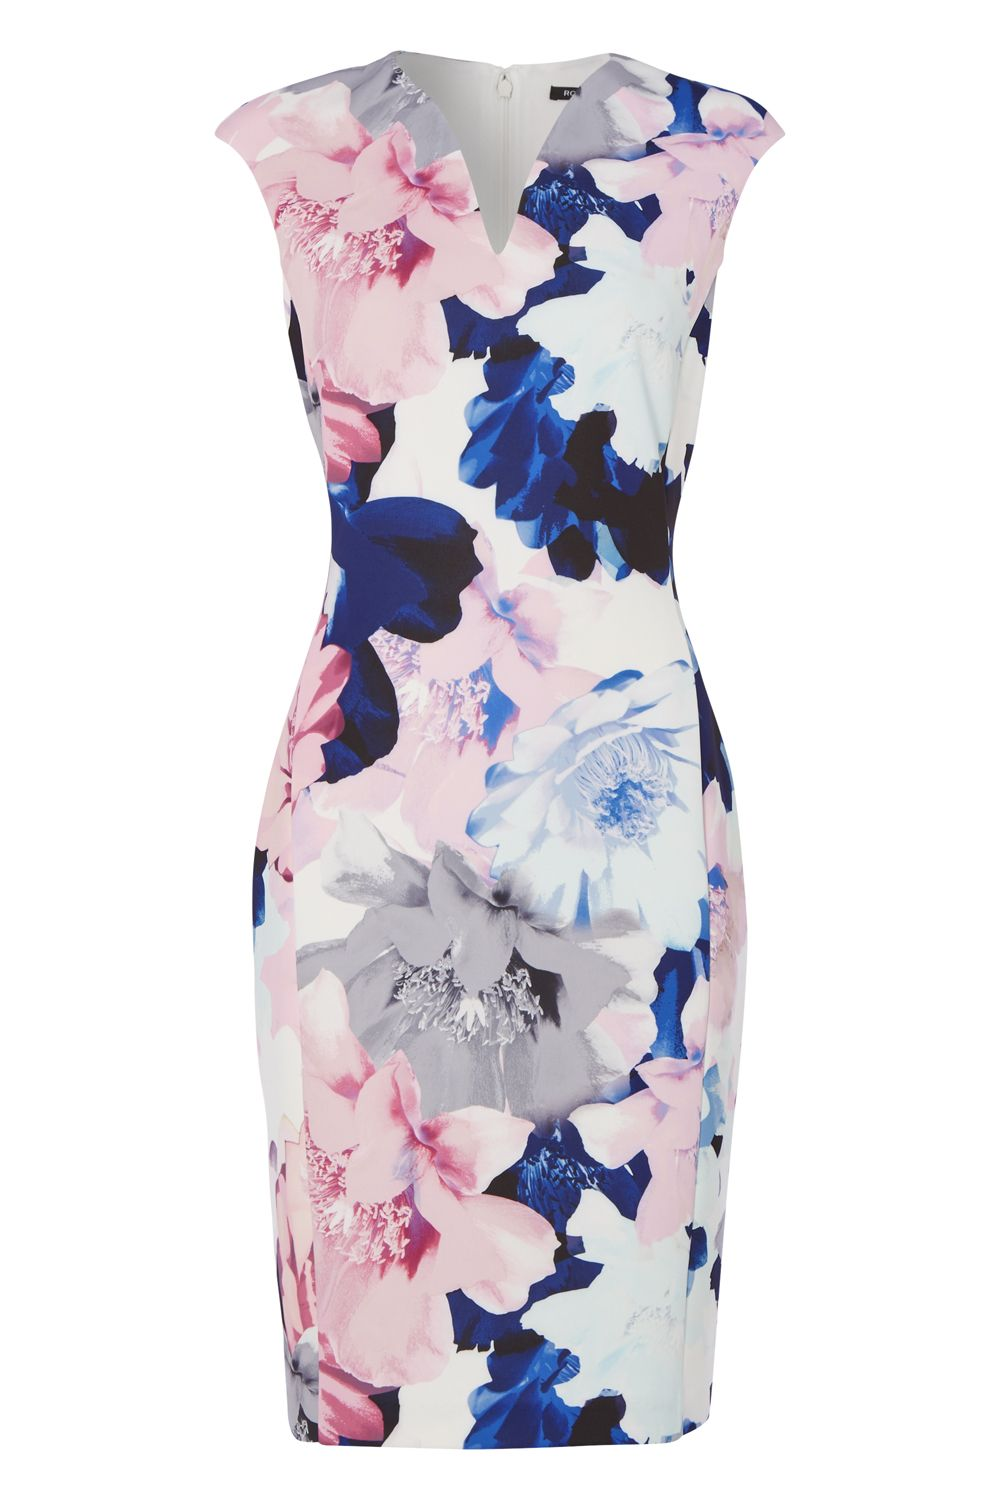 Roman Originals Floral Scuba Dress, Multi-Coloured